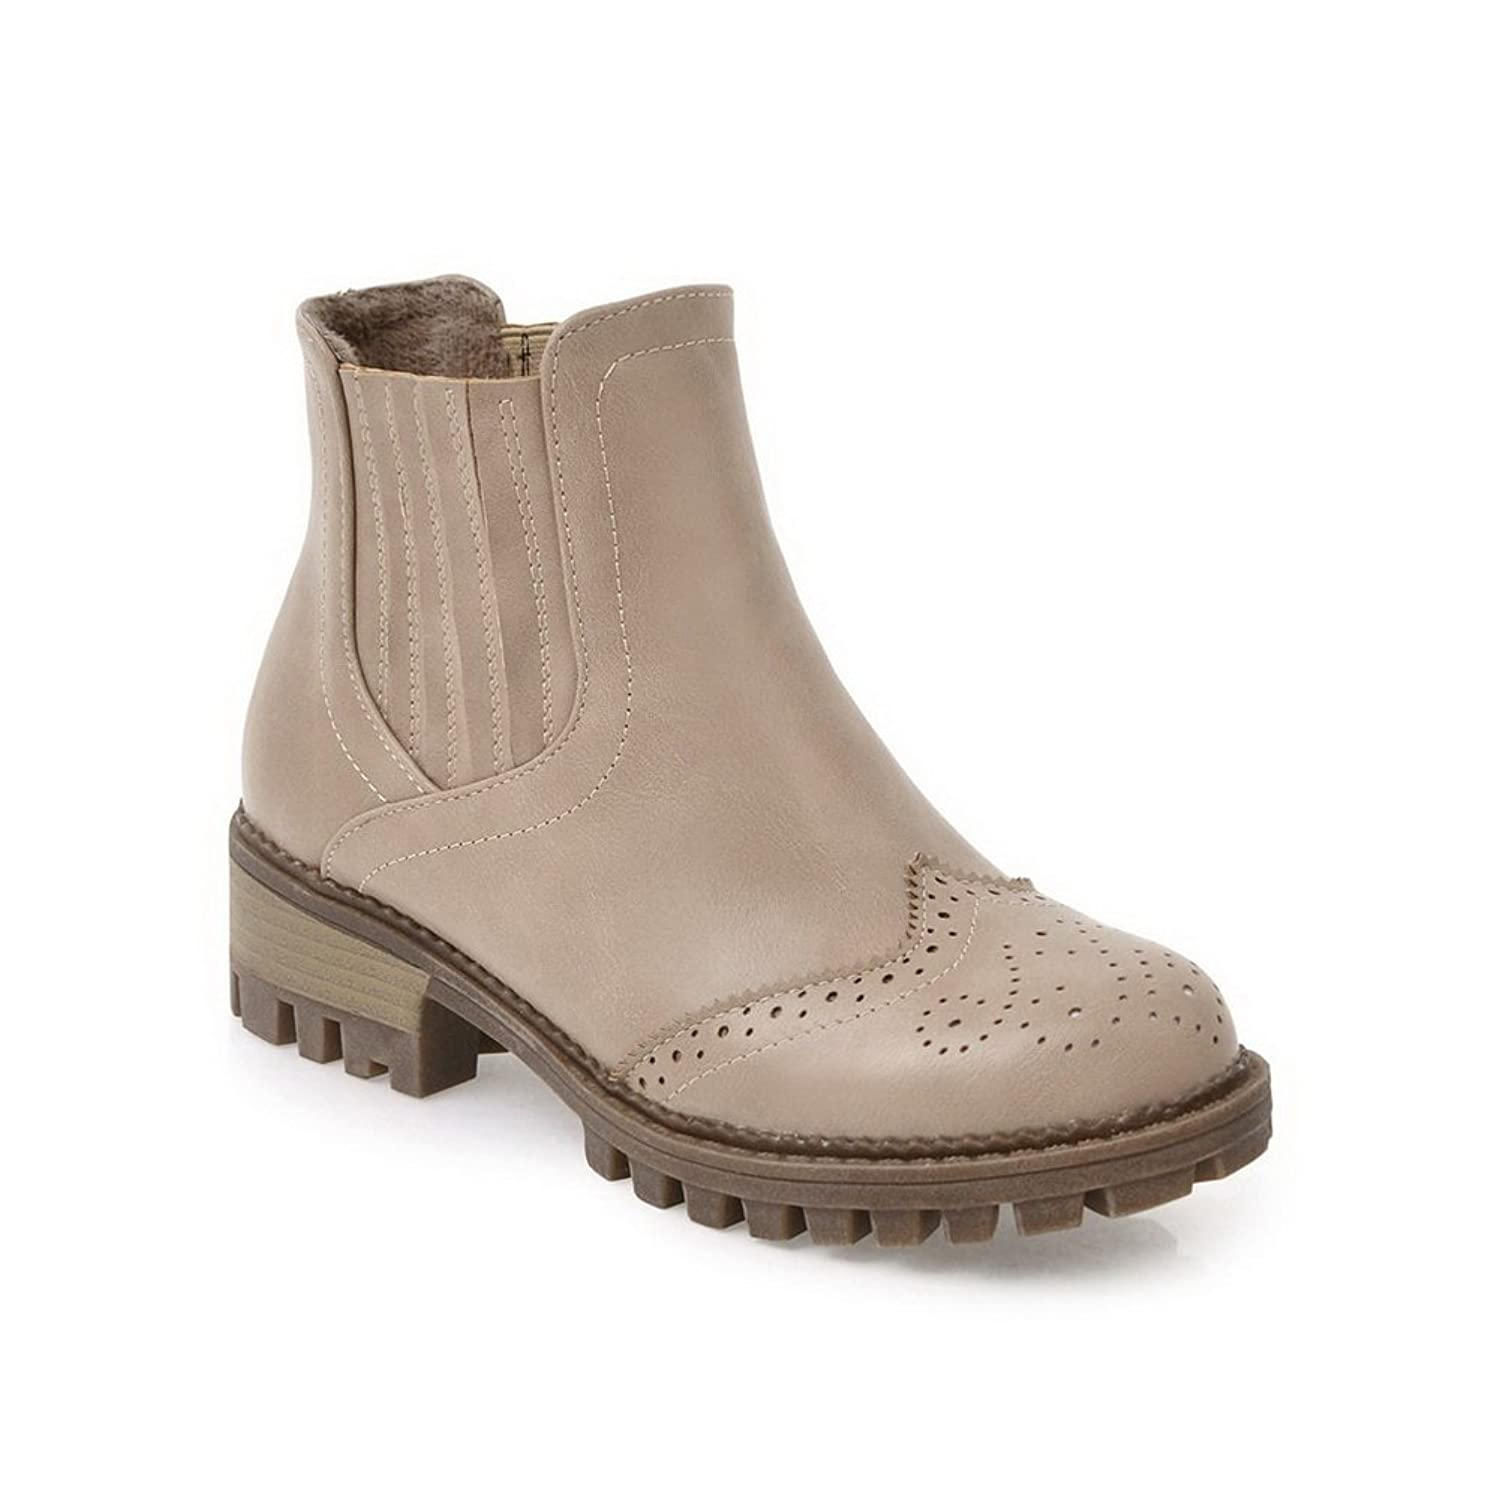 4f598cf9a5db 1TO9 Womens Boots Closed-Toe No-Closure Low-Heel Warm Lining  Water Resistant Assorted Color Pointed-Toe Smooth Leather Urethane Boots  MNS02483